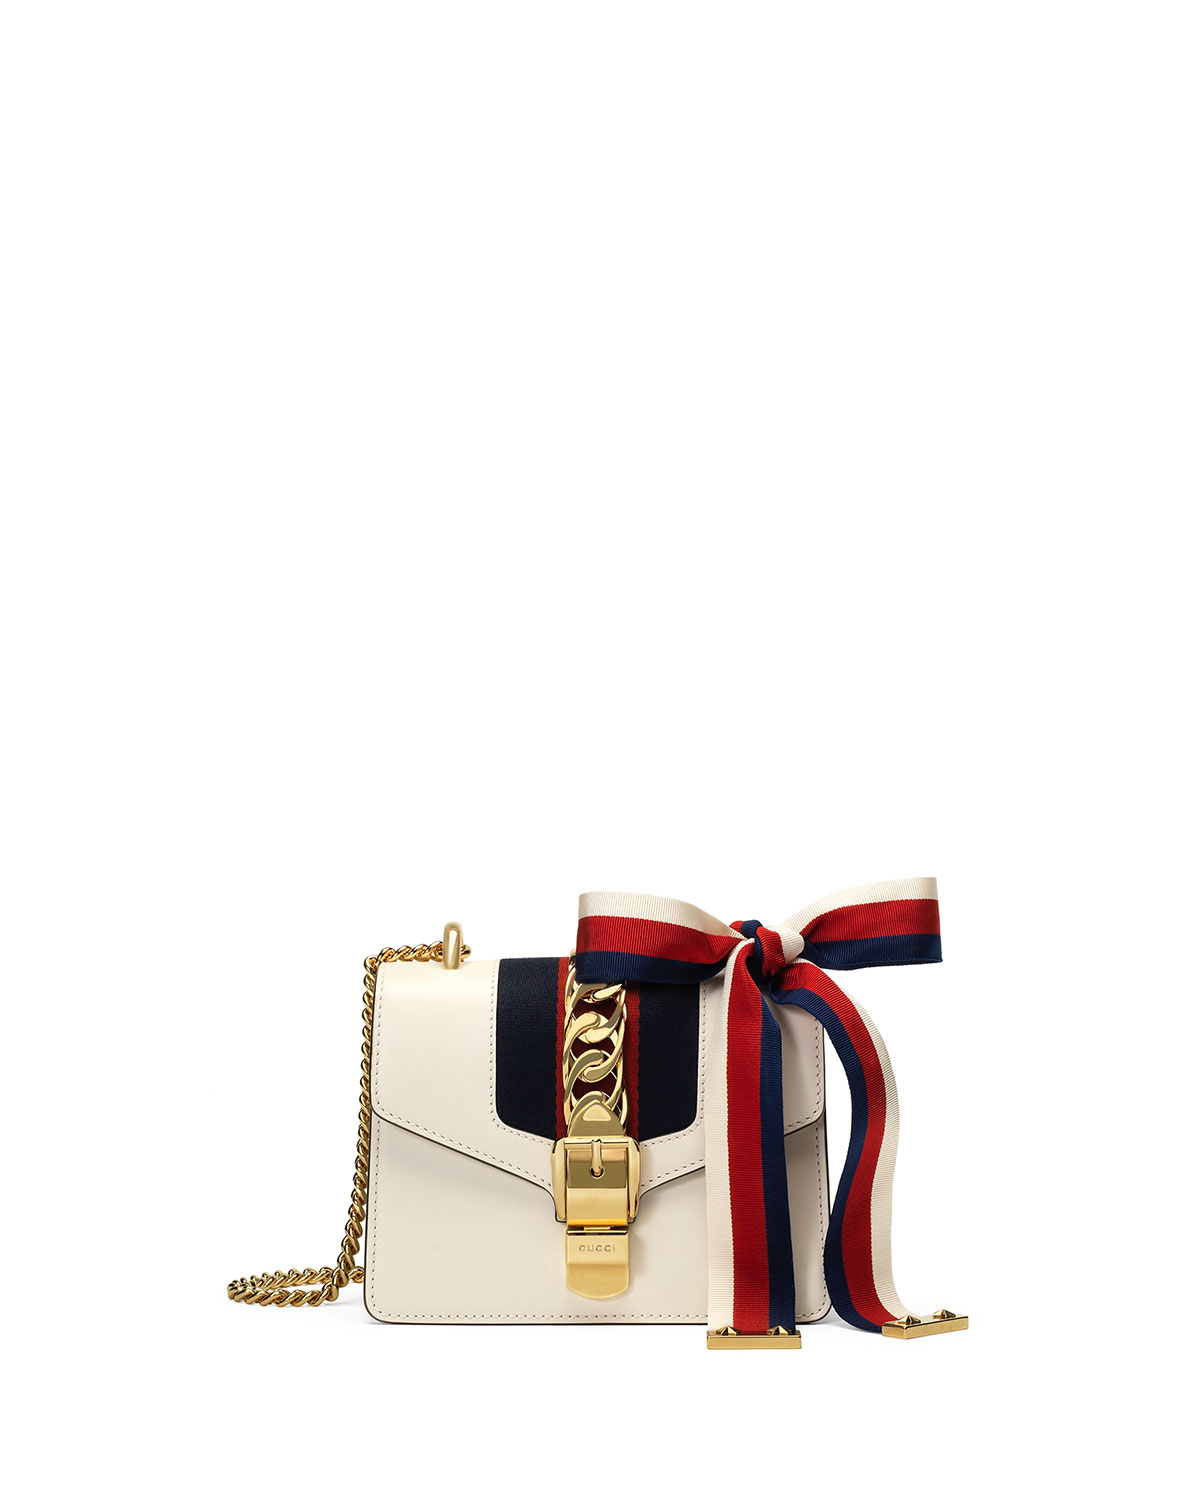 c7d015a9dc6210 Gucci Sylvie Leather Mini Chain Shoulder Bag | Neiman Marcus